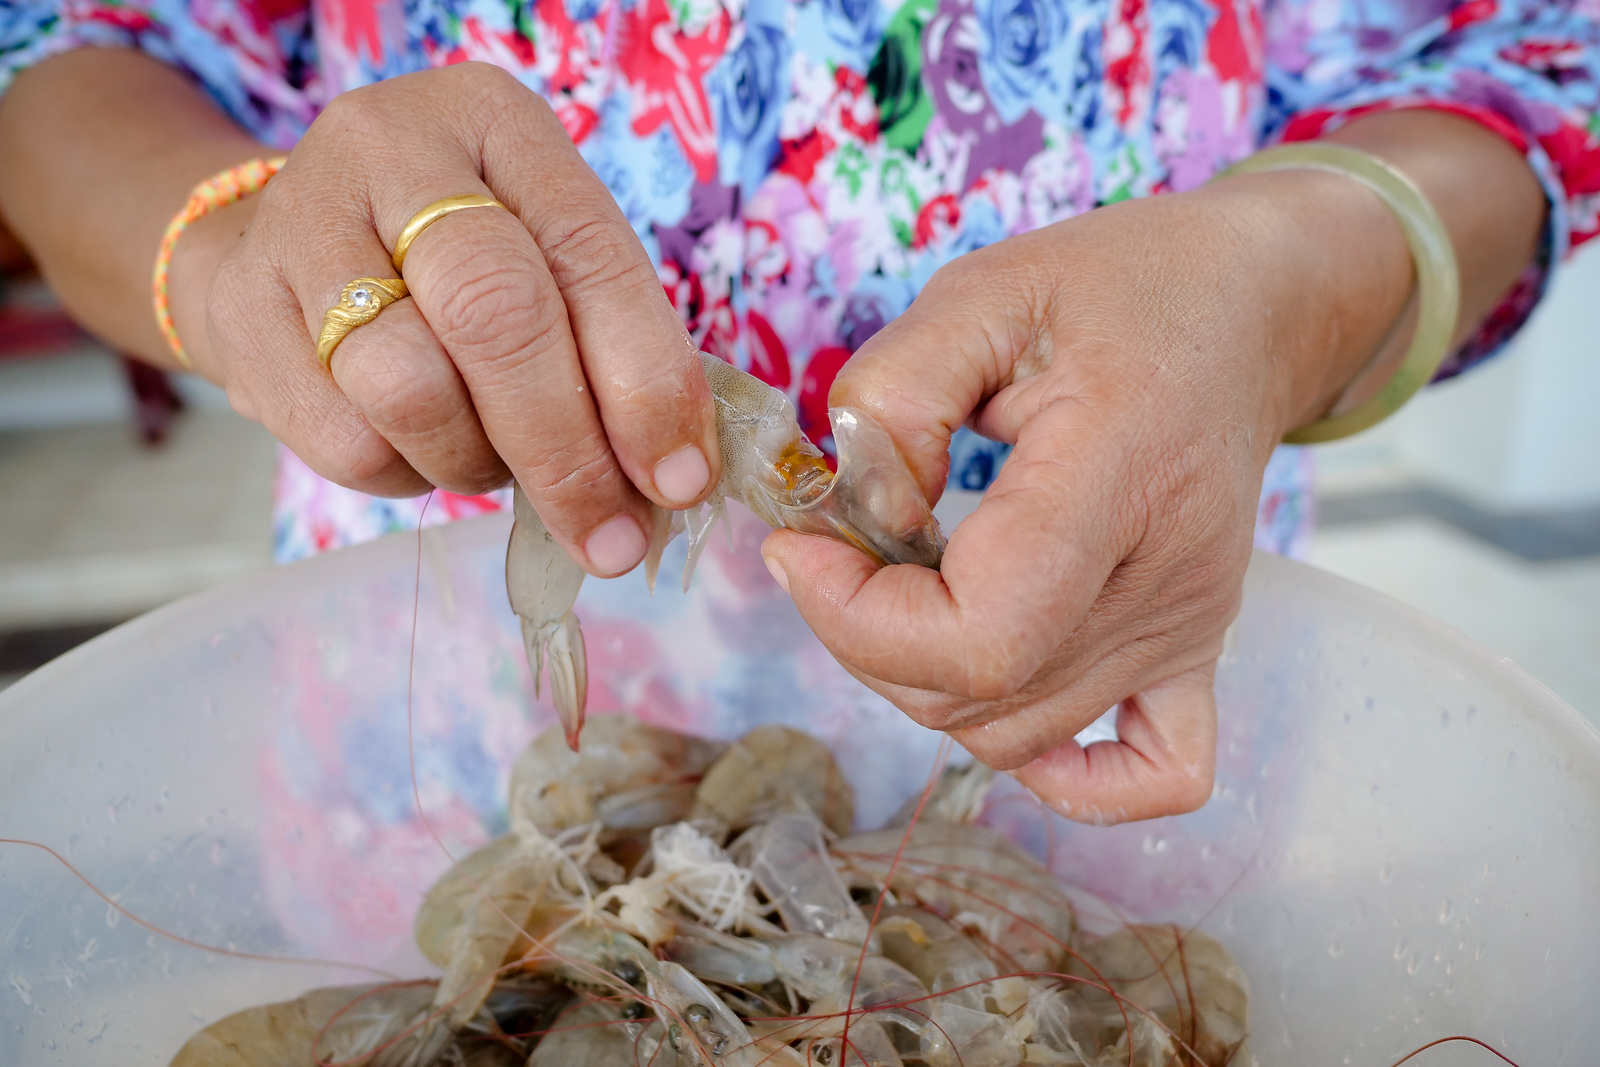 Peeling shrimp for the recipe of shrimp chili dip